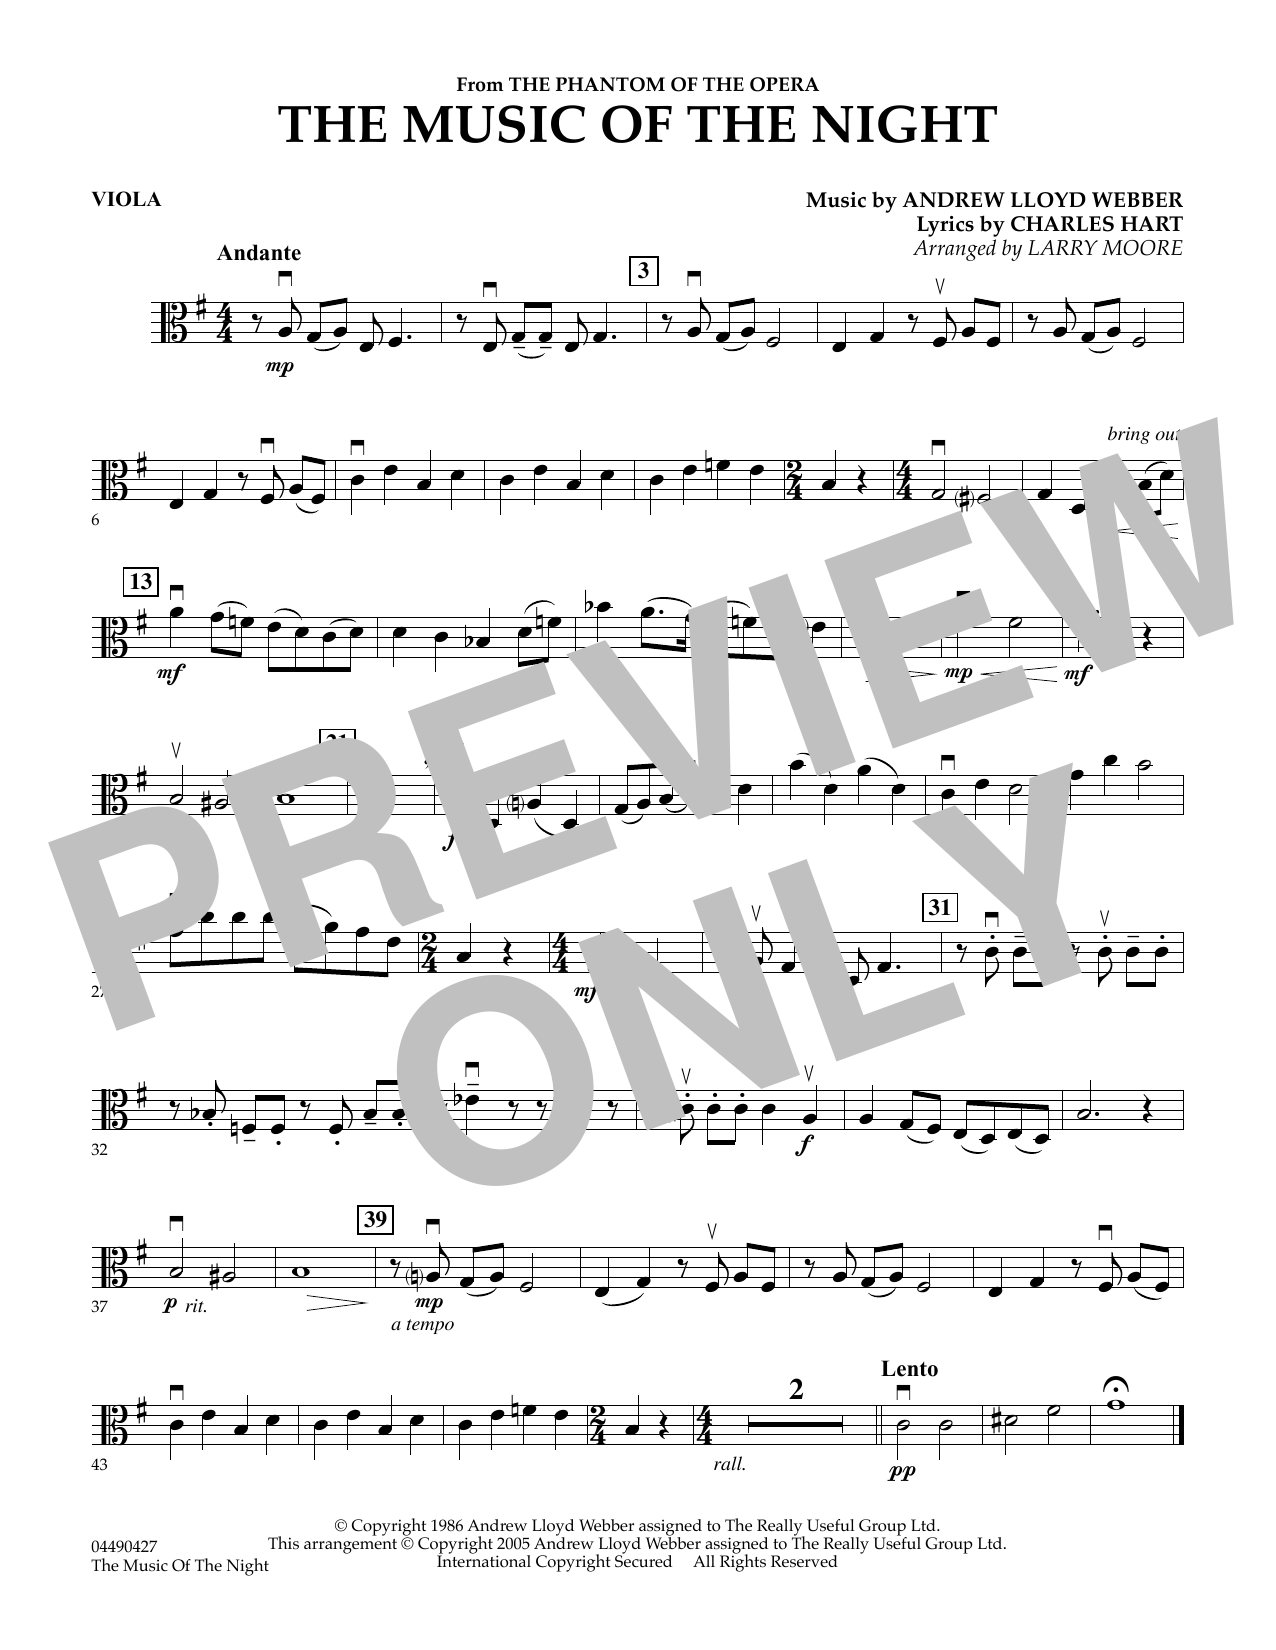 Larry Moore The Music of the Night (from The Phantom of the Opera) - Viola sheet music preview music notes and score for String Quartet including 1 page(s)